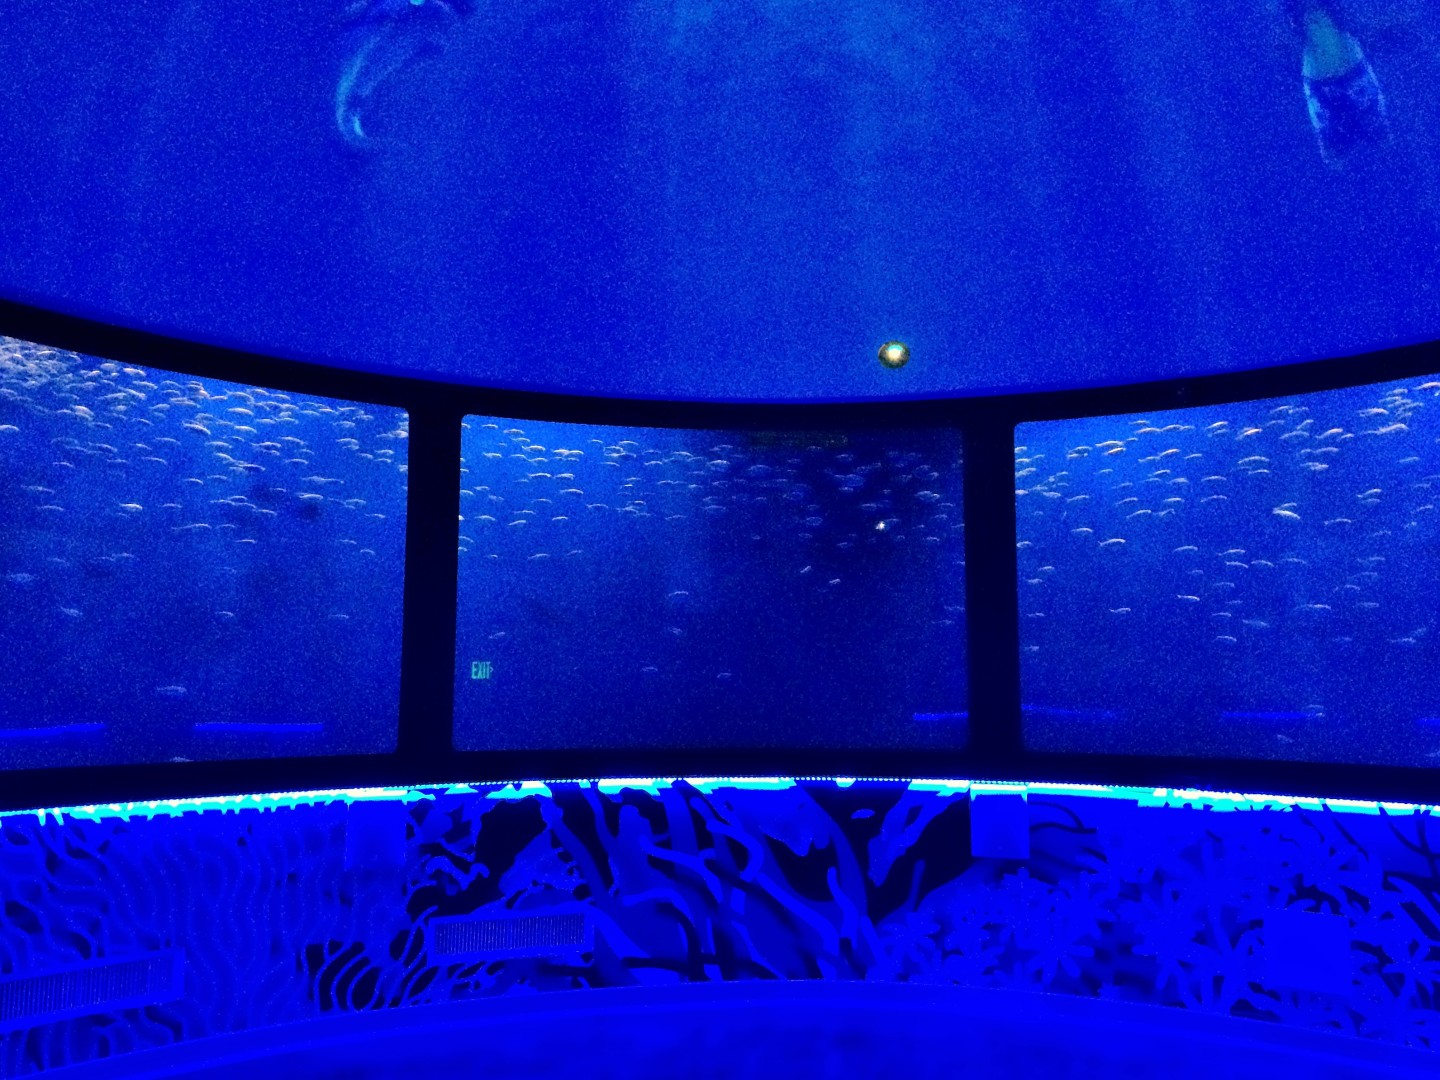 Fish swam around the middle while cartoon characters on the domed ceiling talked.